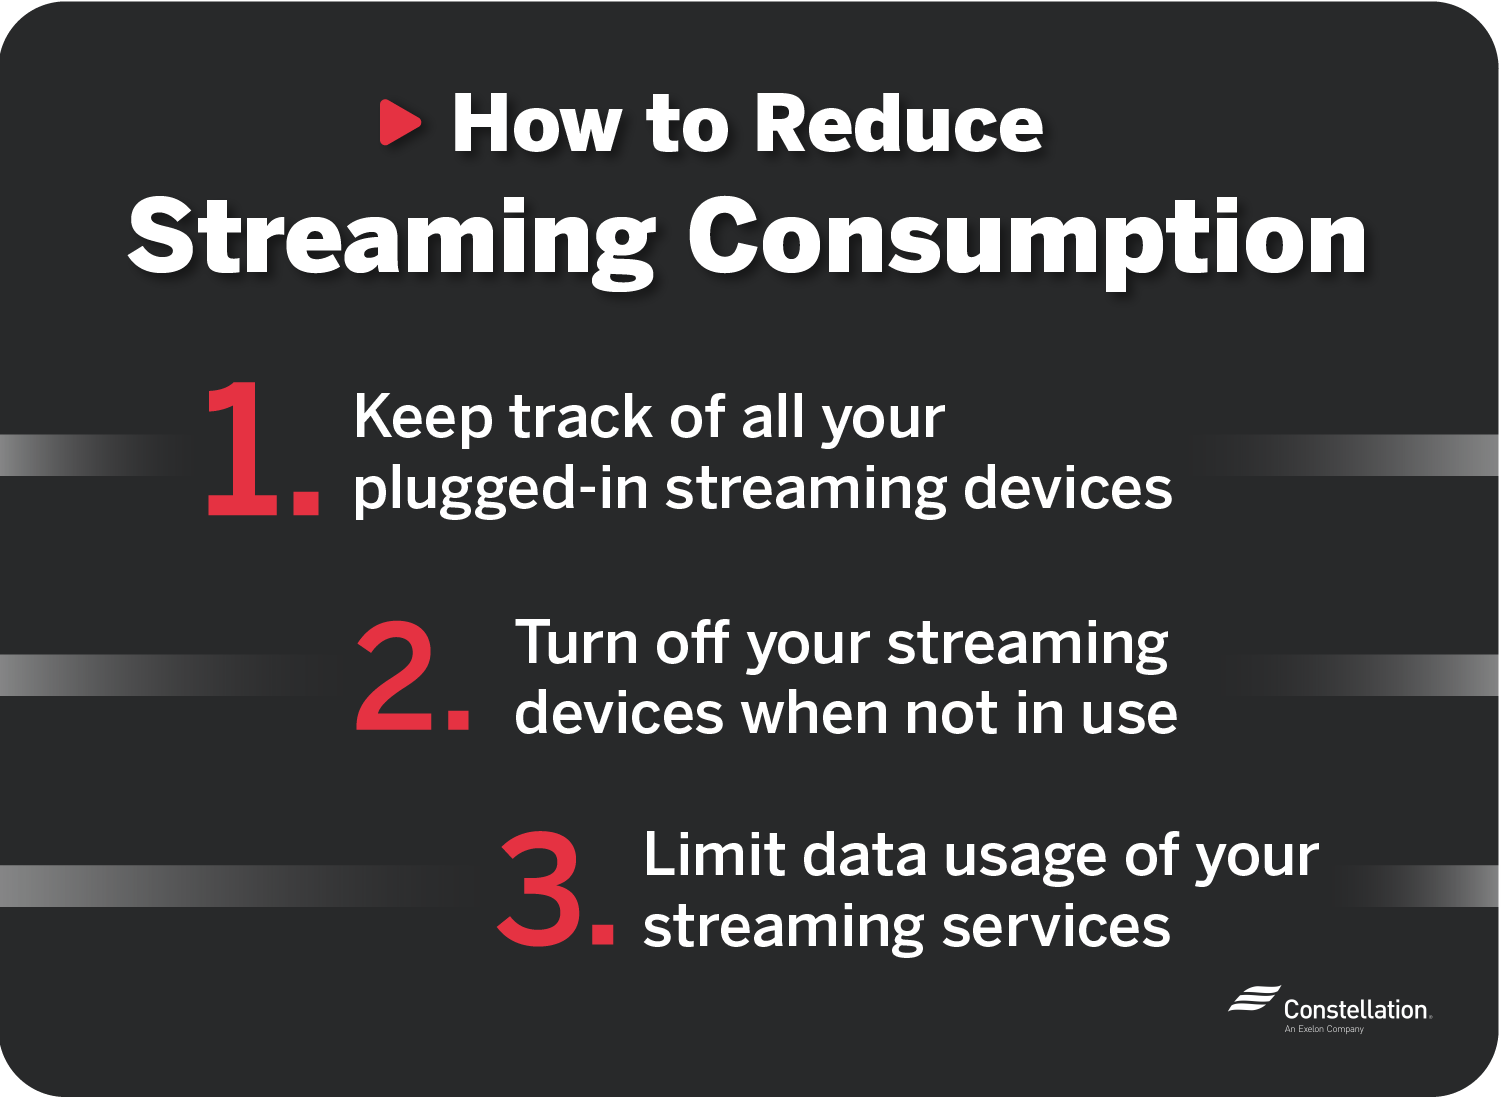 How to reduce streaming consumption